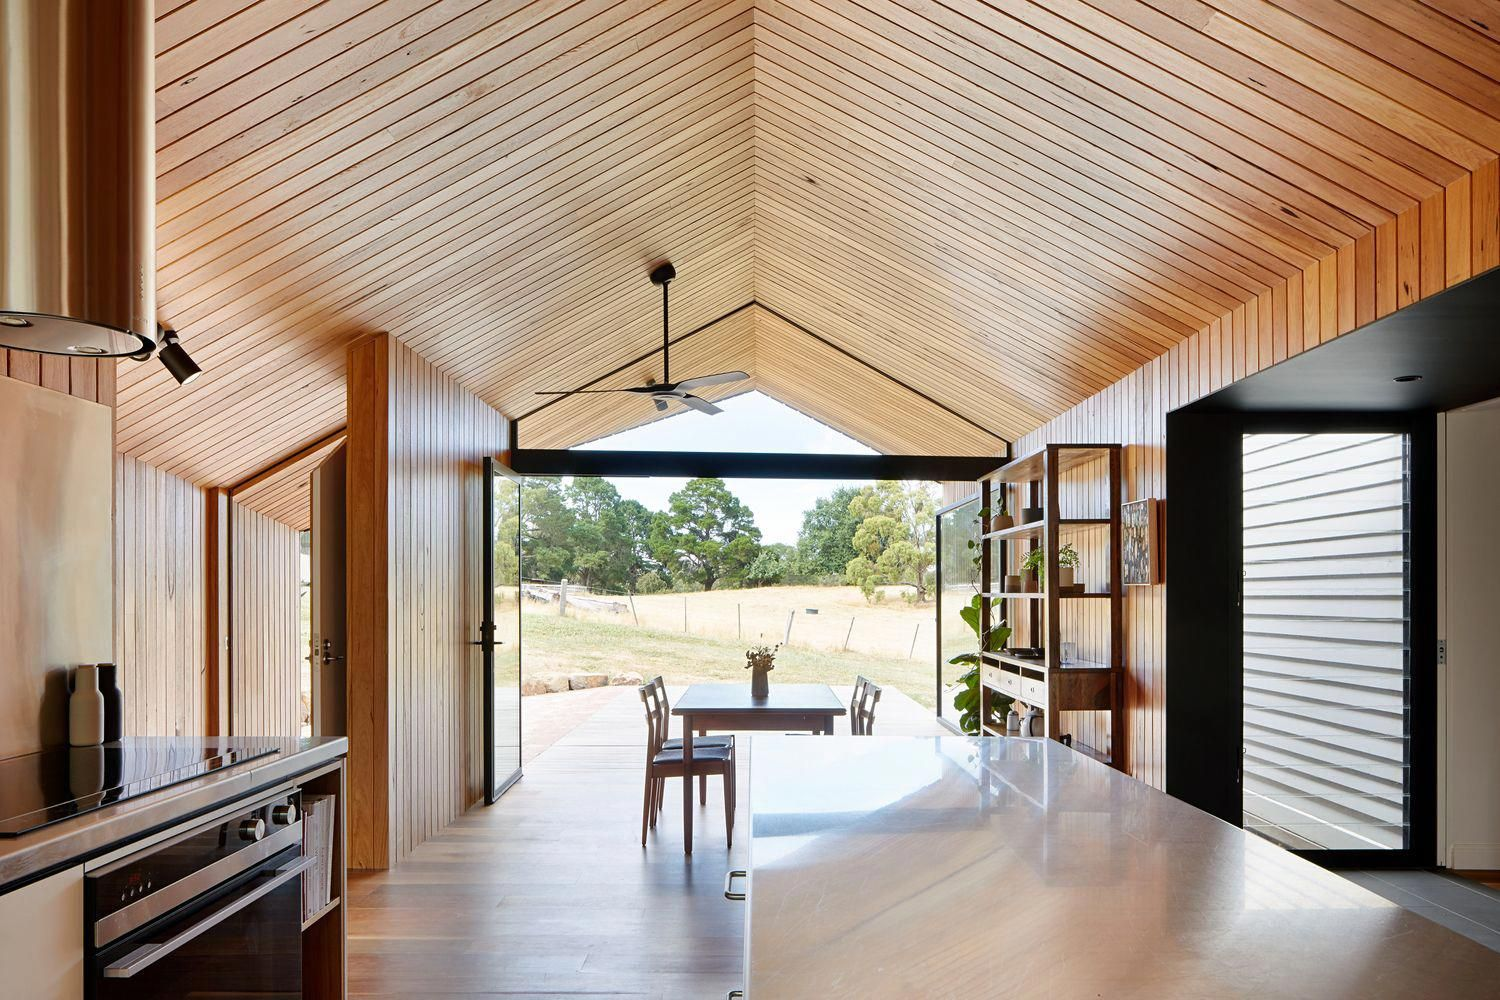 Gallery of limerick house solomon troup architects 4 interiordesignideas